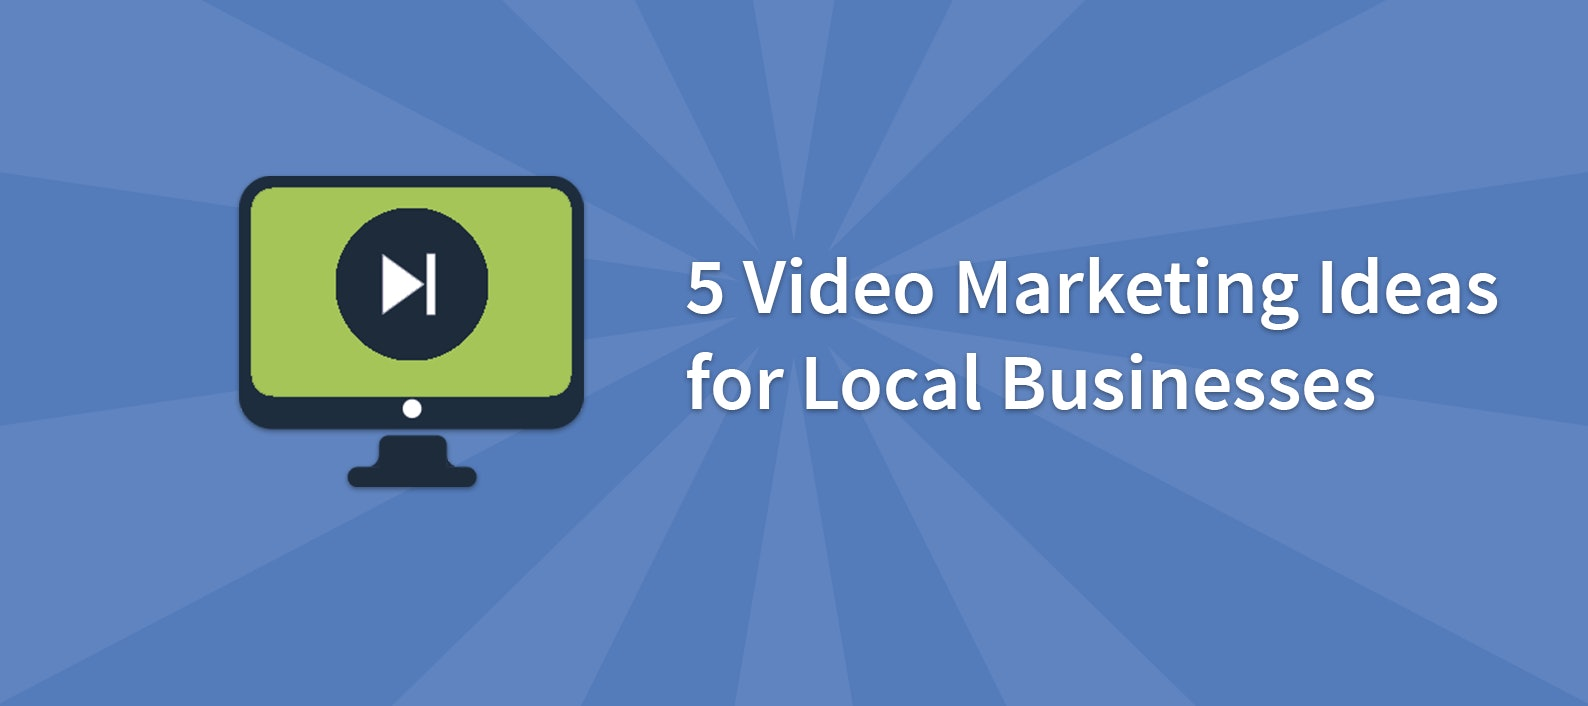 5 Video Marketing Ideas for Local Businesses